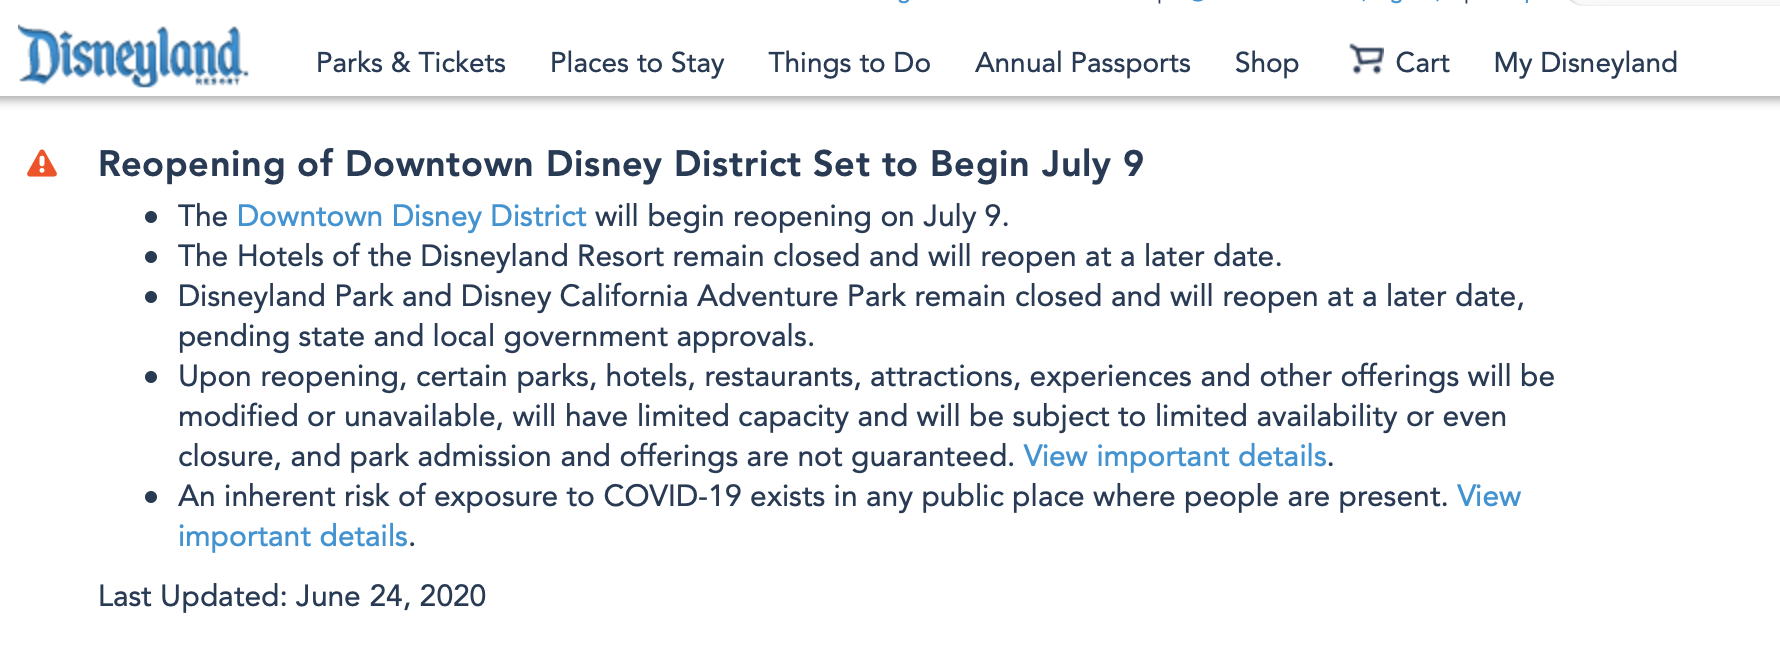 disneyland announcement with dates taken off